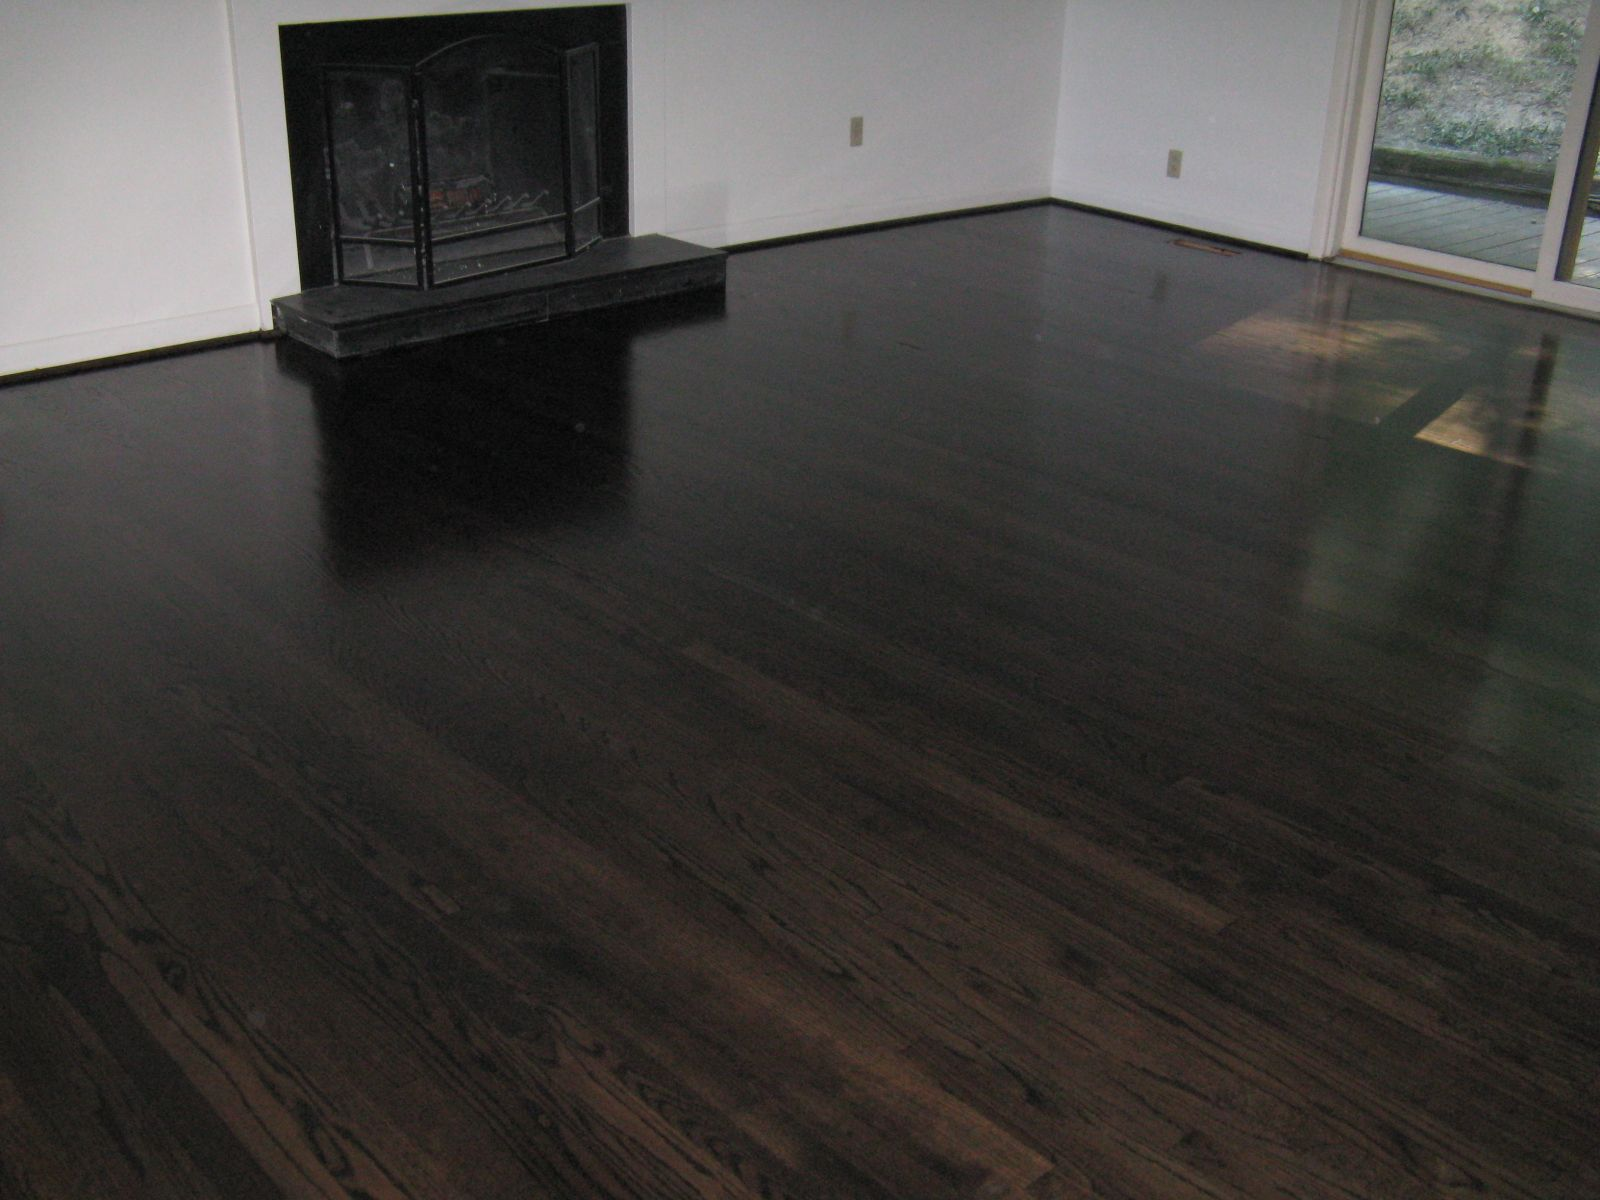 5 Red Oak Stained Black Ebony Throughout First Floor